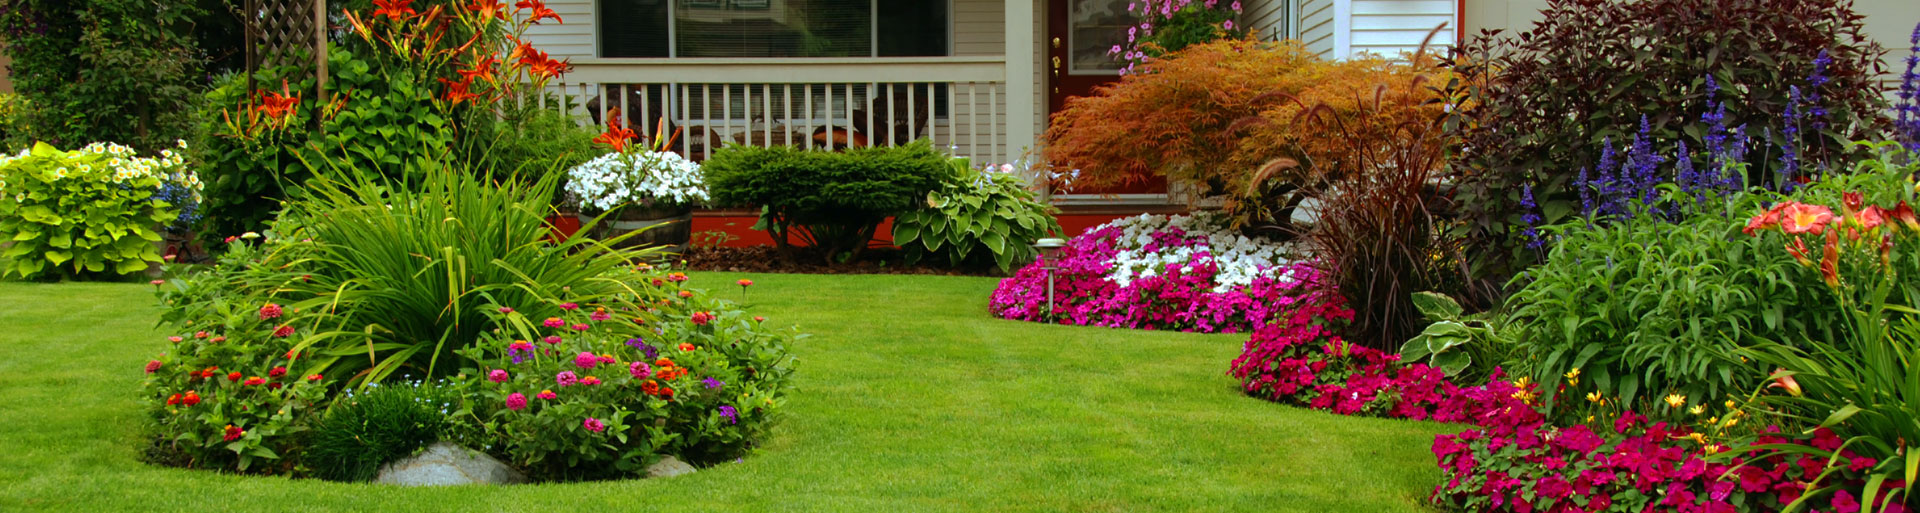 Articulate Landscaping, LLC